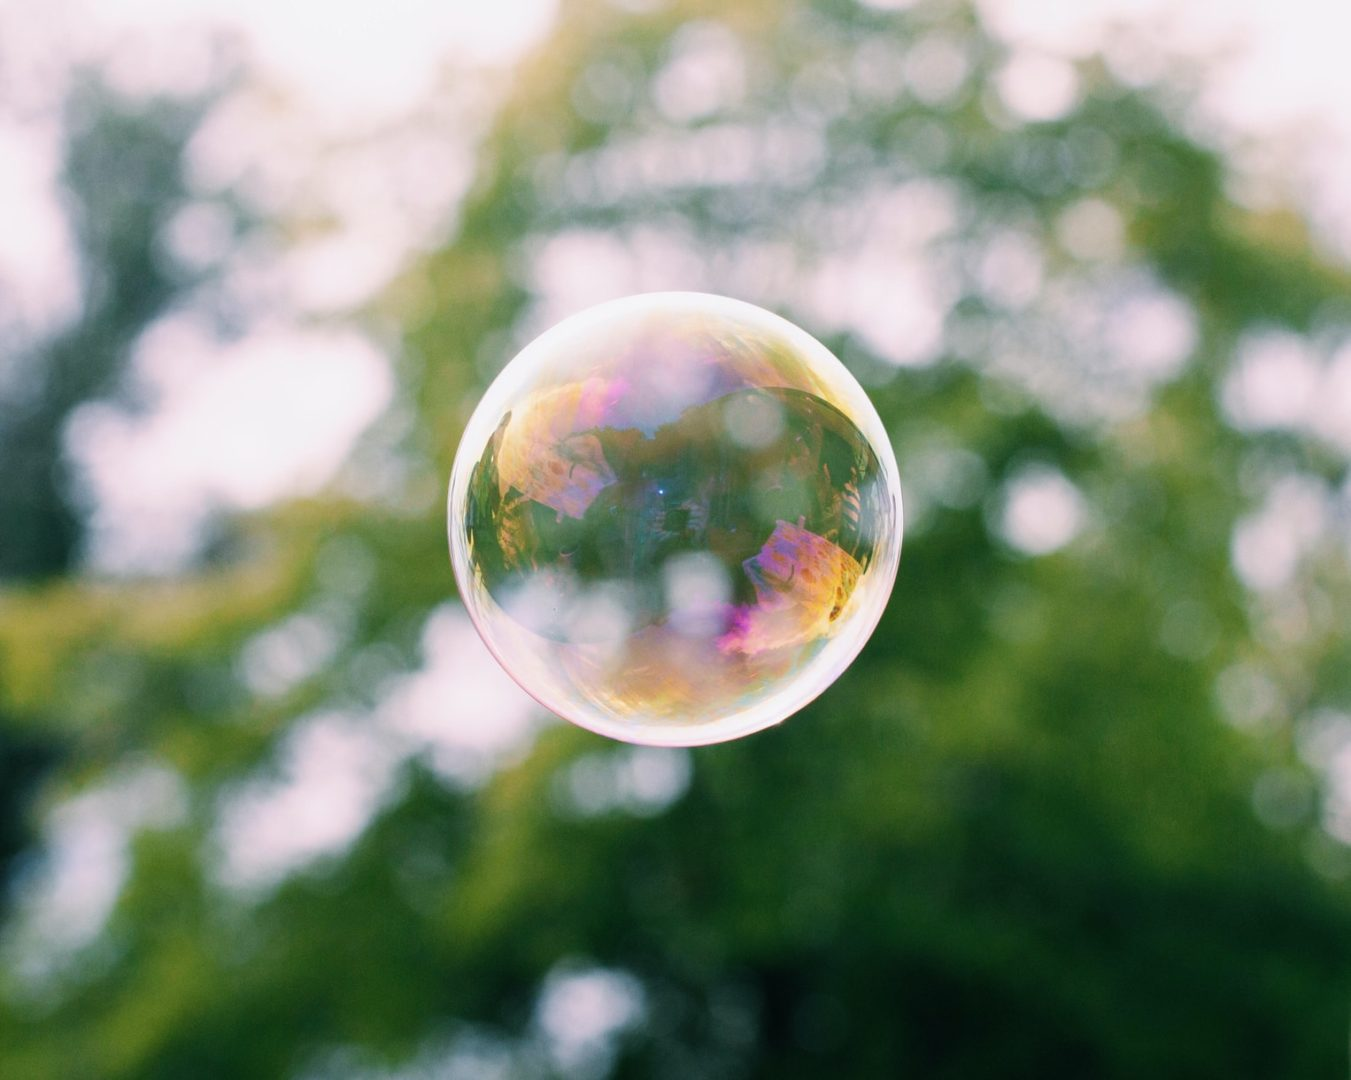 Bubble floating in air in front of trees